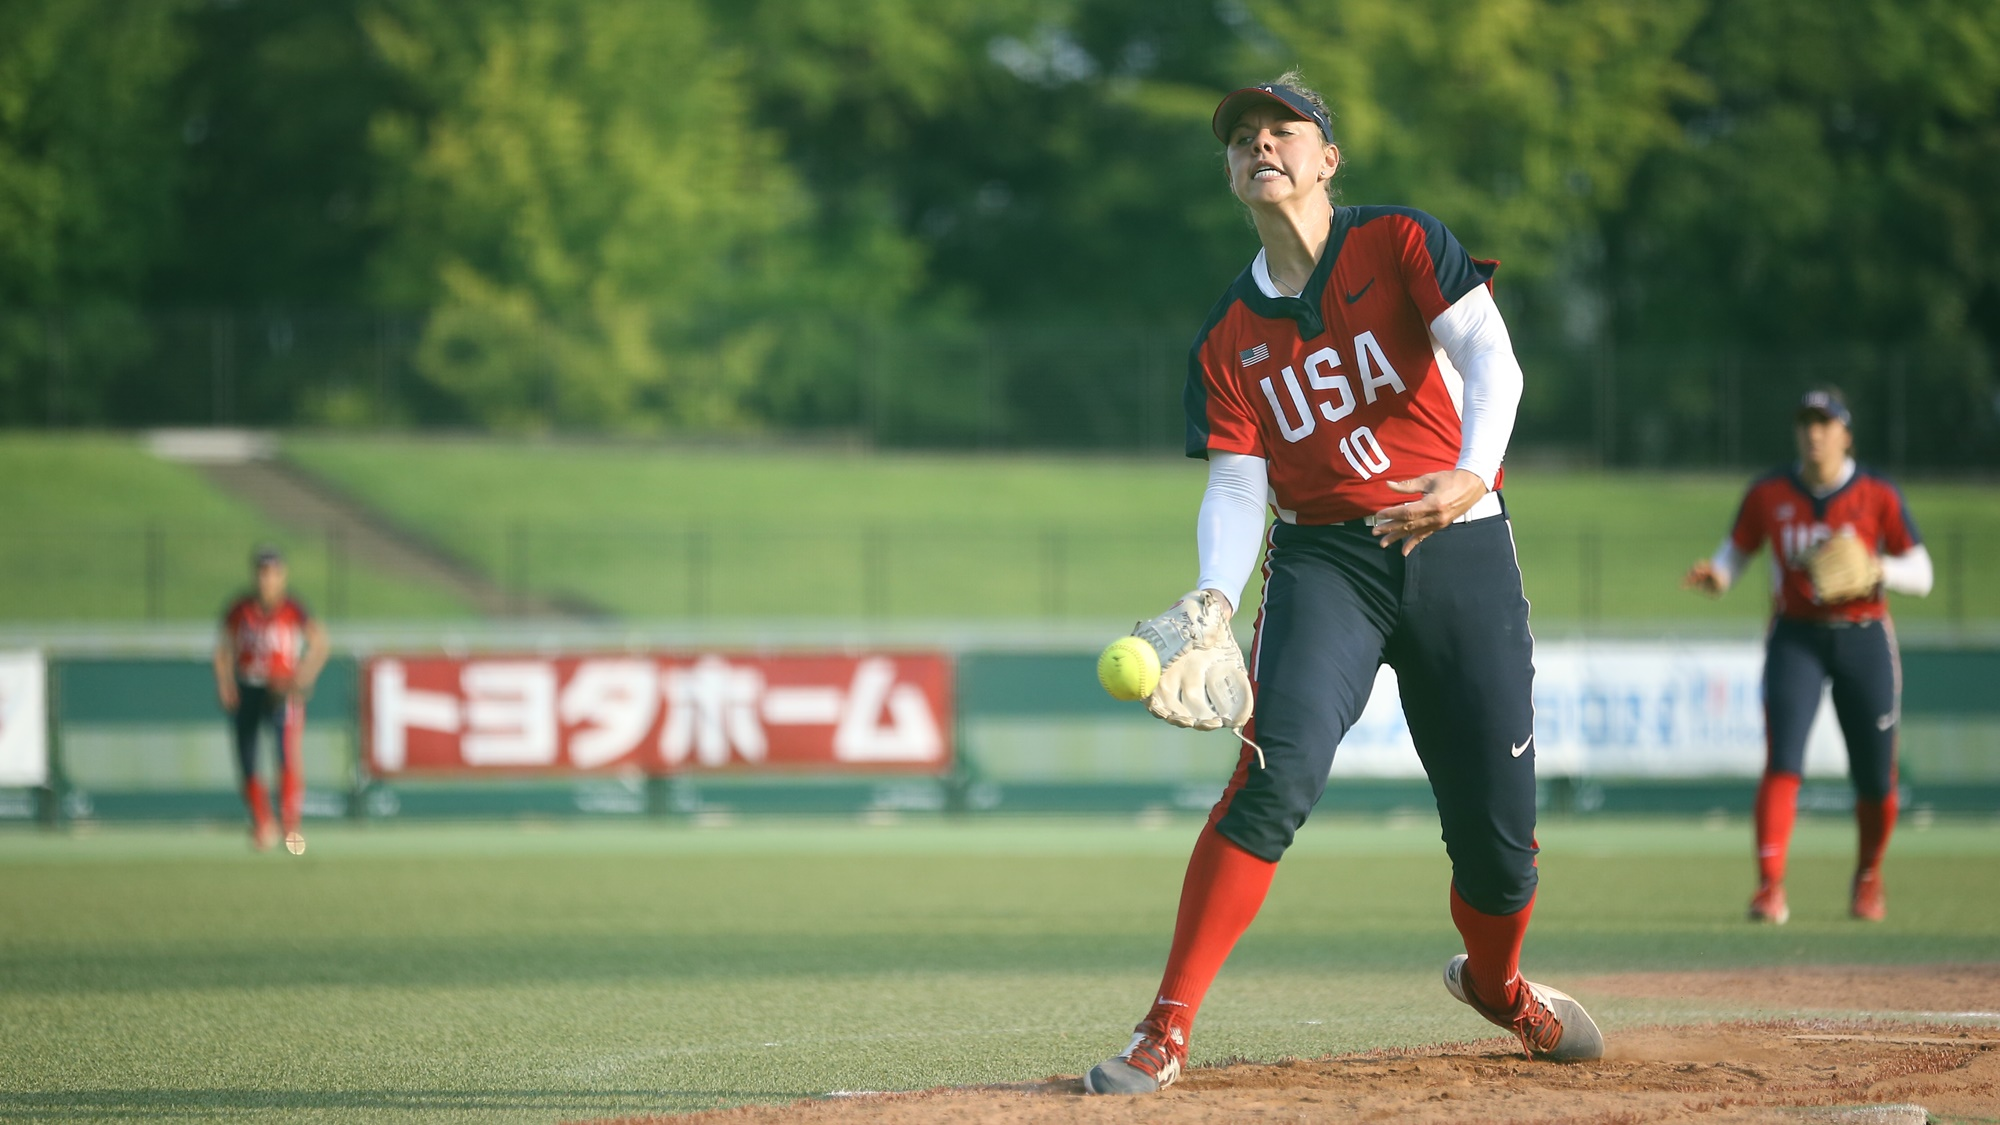 Keilani Riketts pitched a five-inning shutout and took the win over Chinese Taipei